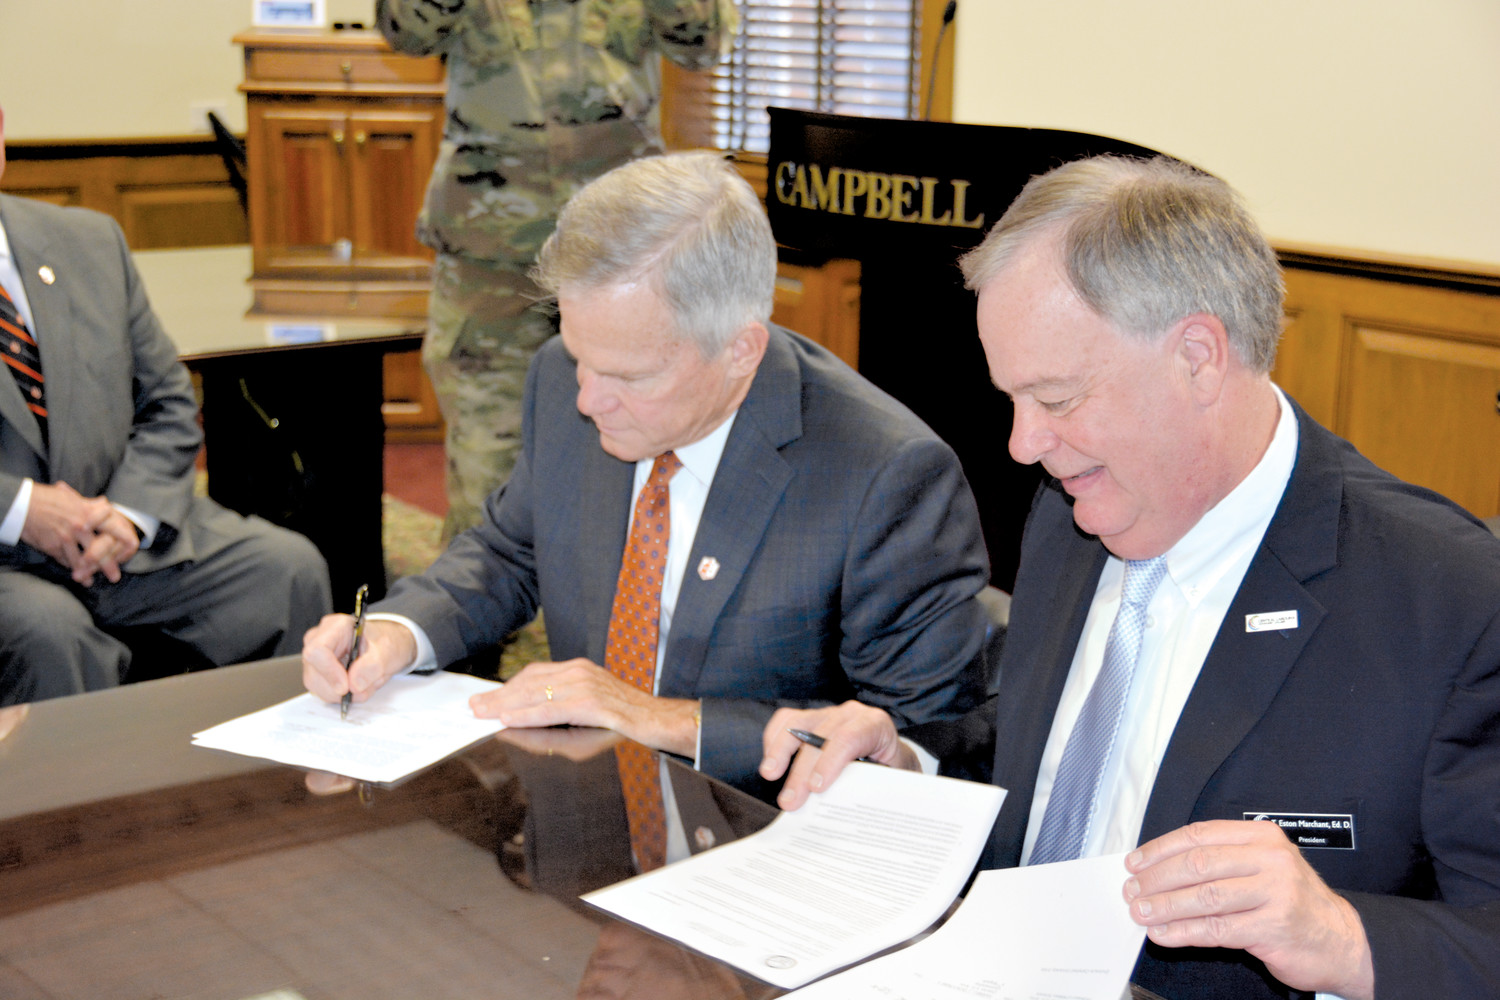 Campbell University President Dr. J. Bradley Creed and Central Carolina Community College President Dr. Bud Marchant sign an agreement allowing smooth transition of students interested in studying military science between the two schools.